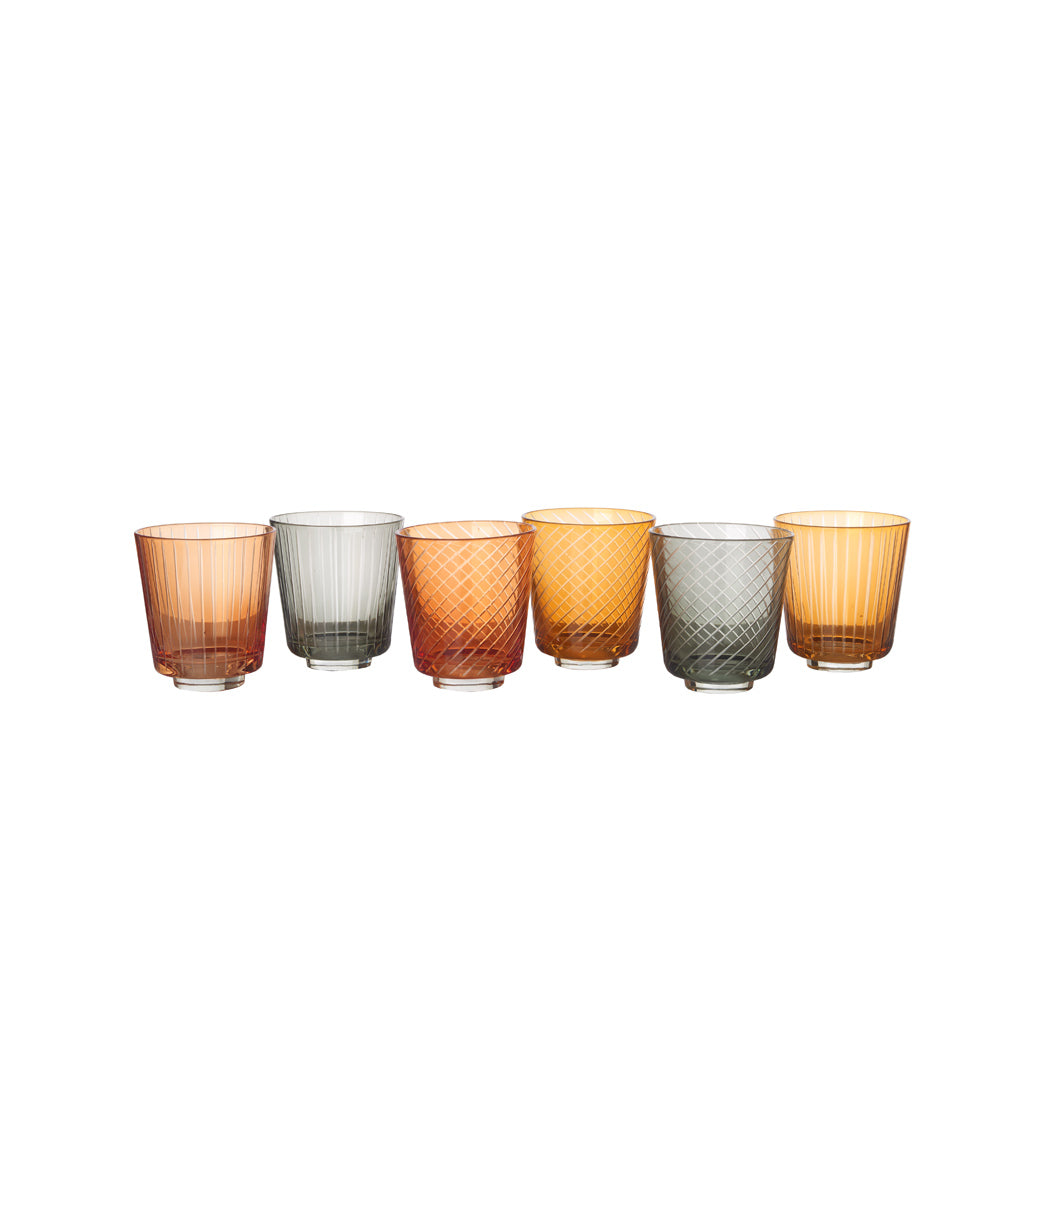 Tumbler library Set of 6